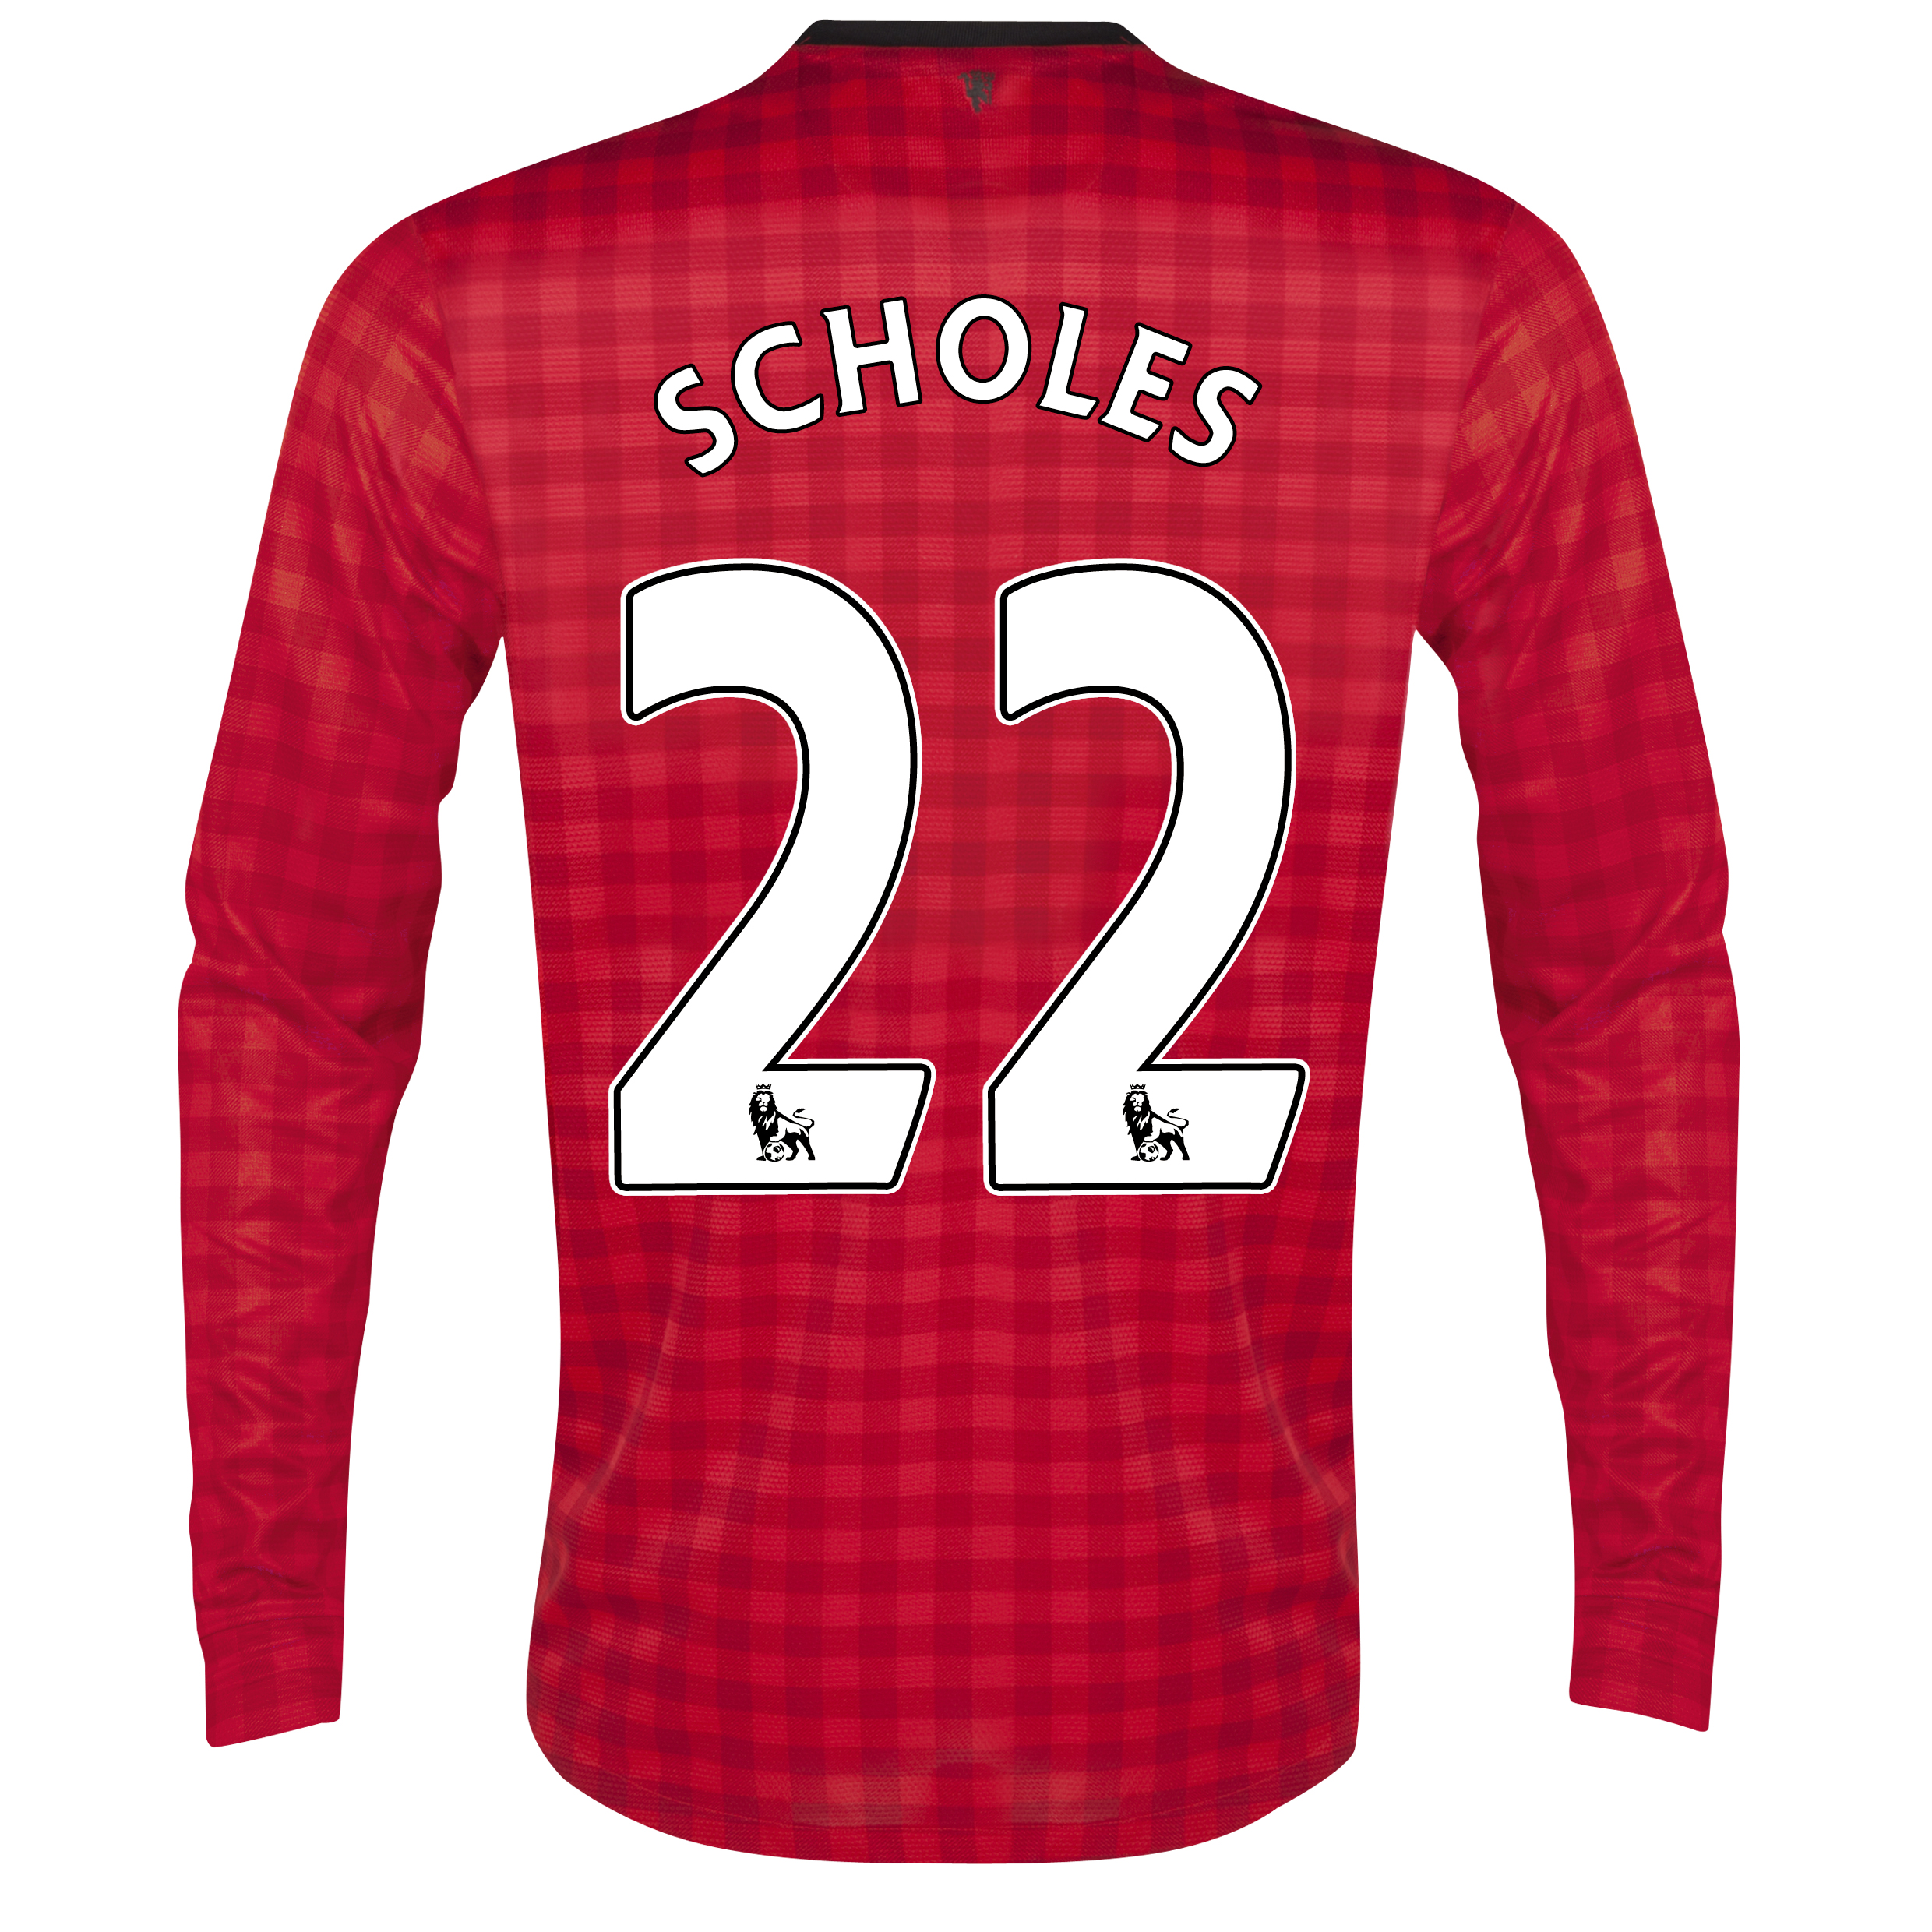 Manchester United Home Shirt 2012/13 - Long Sleeved  - Kids with Scholes 22 printing